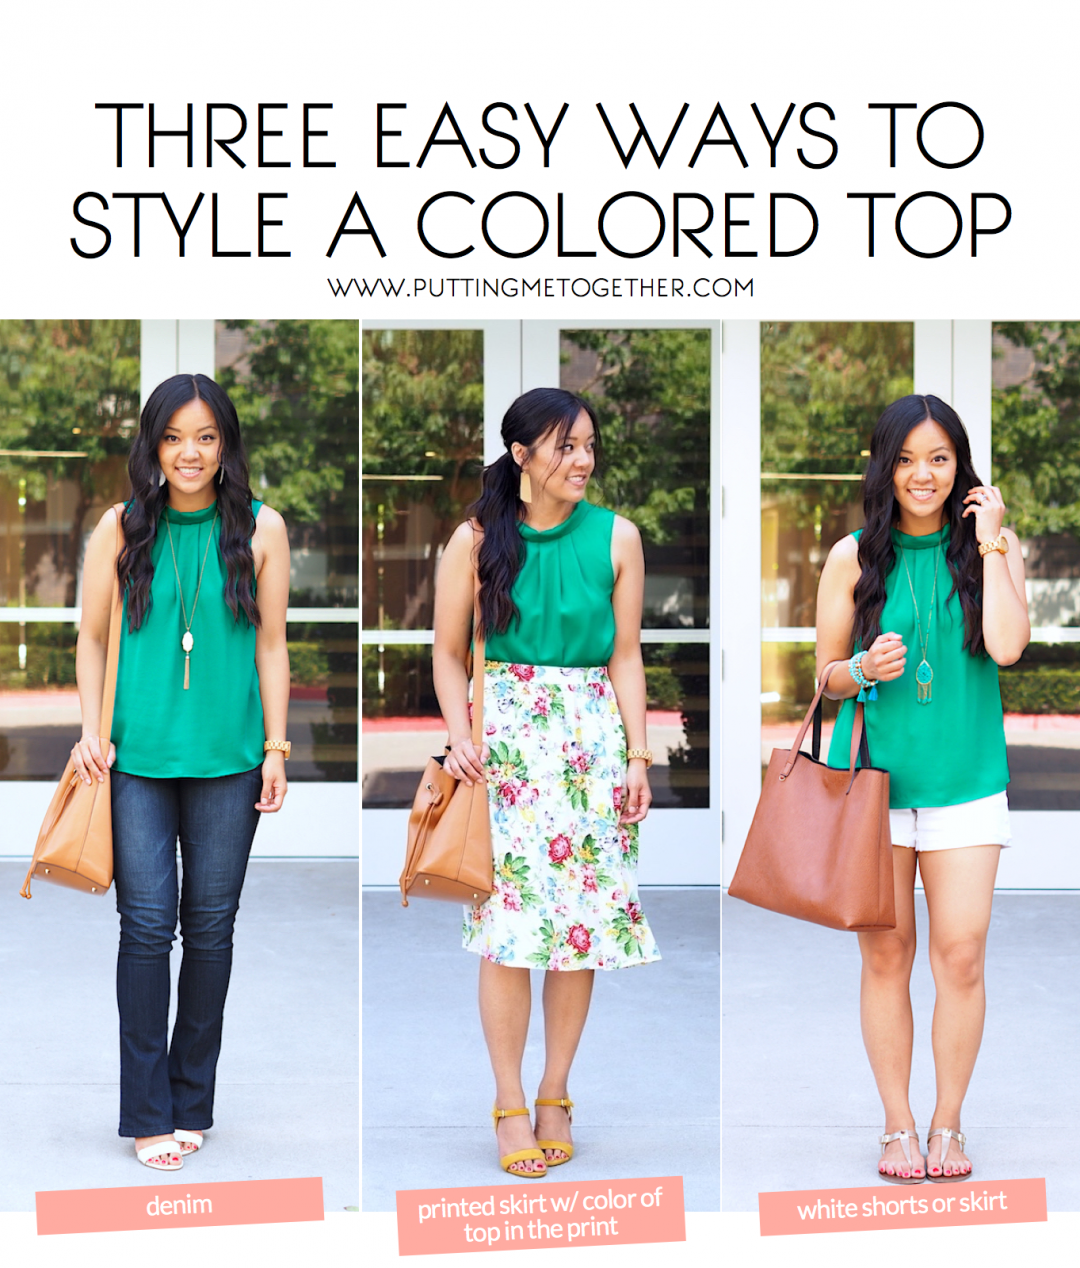 f457f11c7a6 Three Easy Pairings for Your Colorful Tops - Putting Me Together